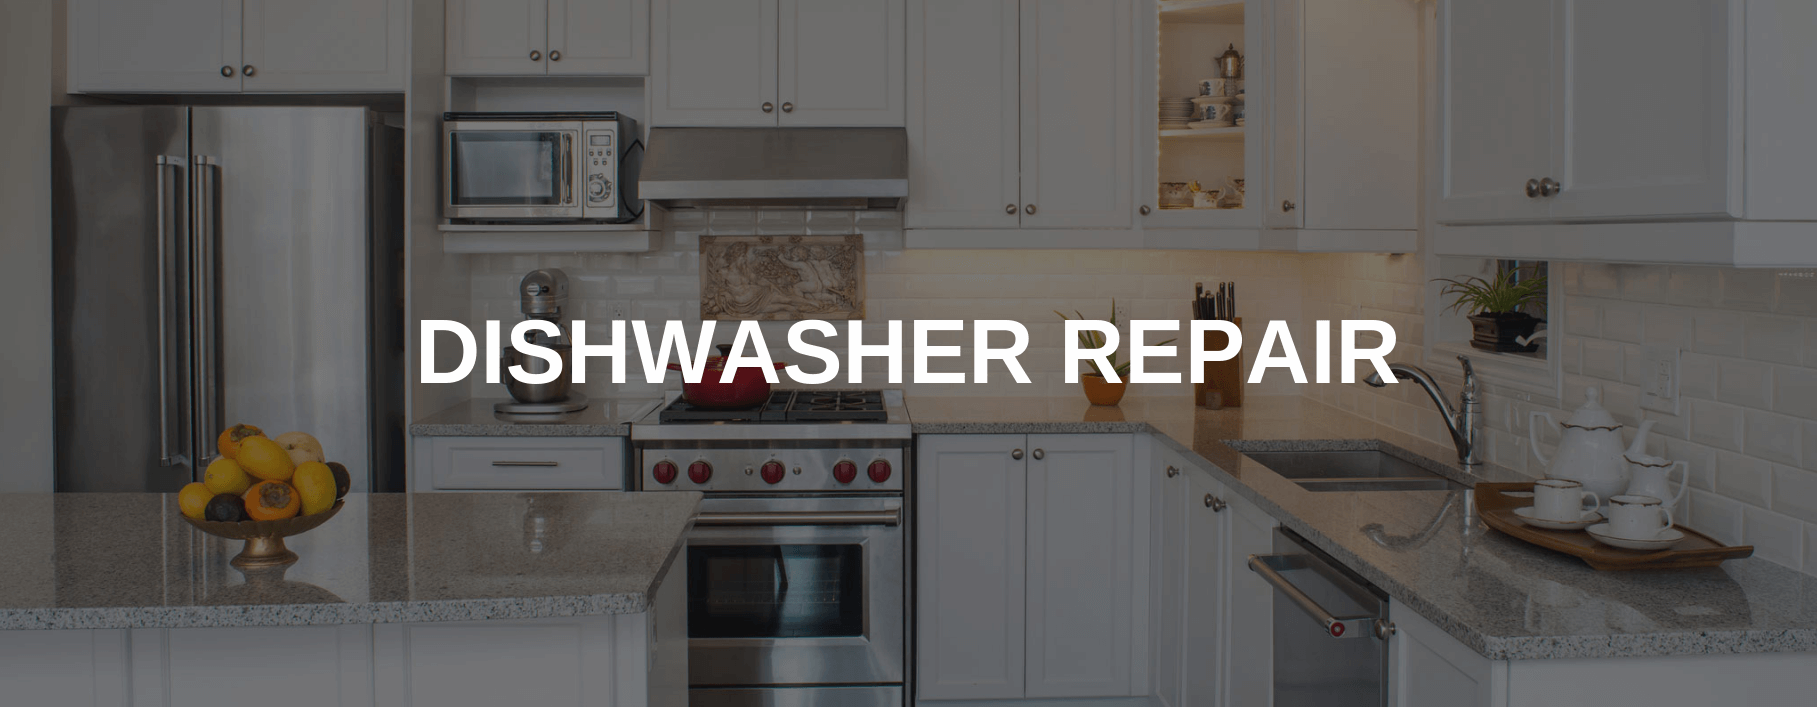 dishwasher repair washington